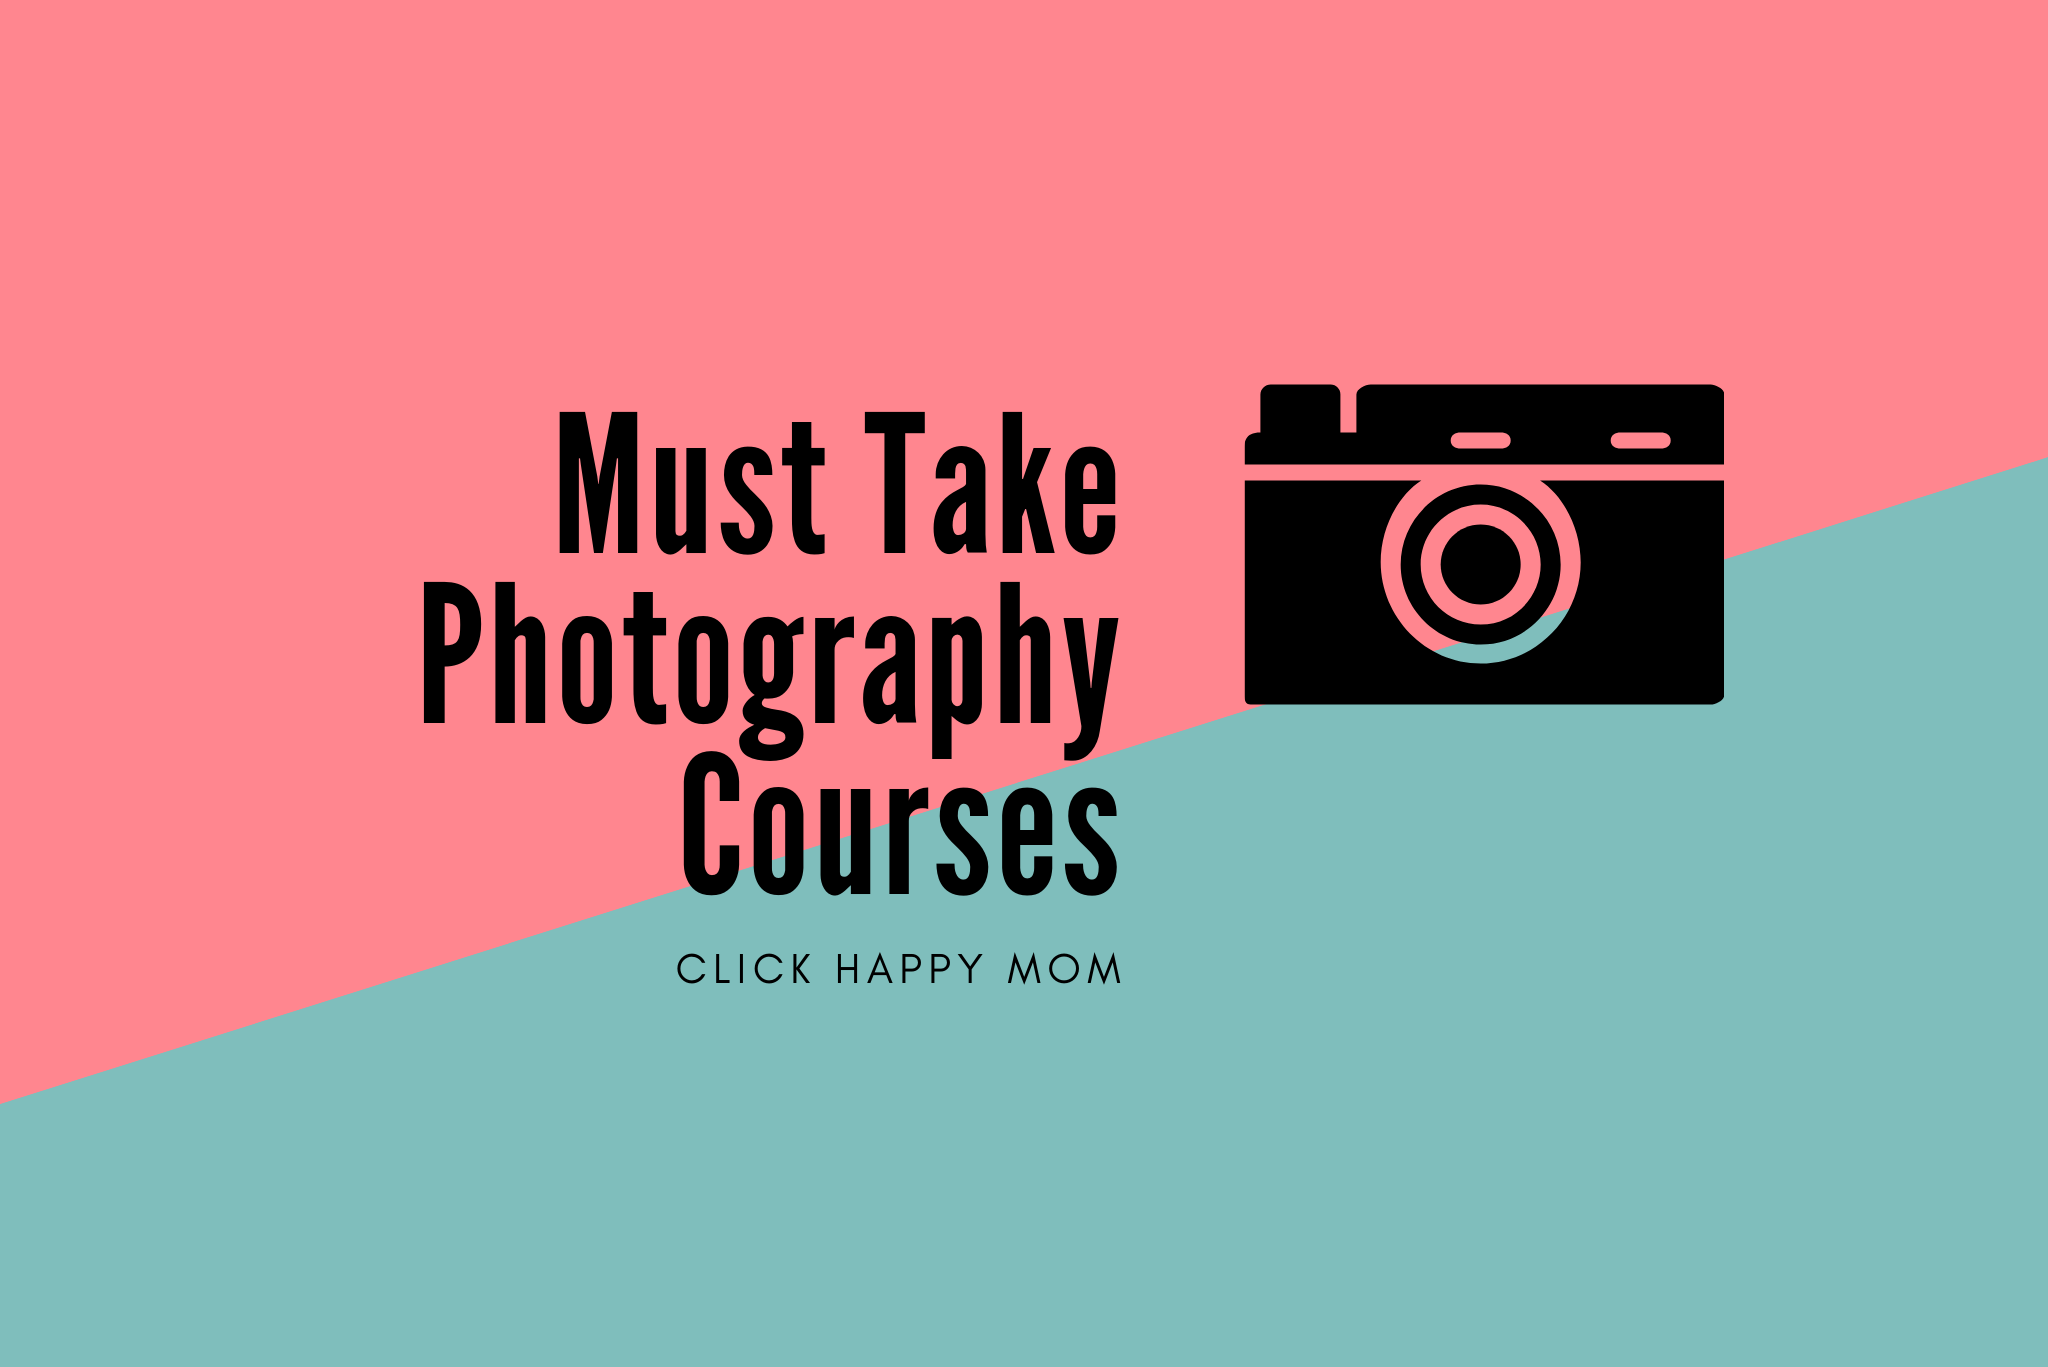 Must Take Photography Courses